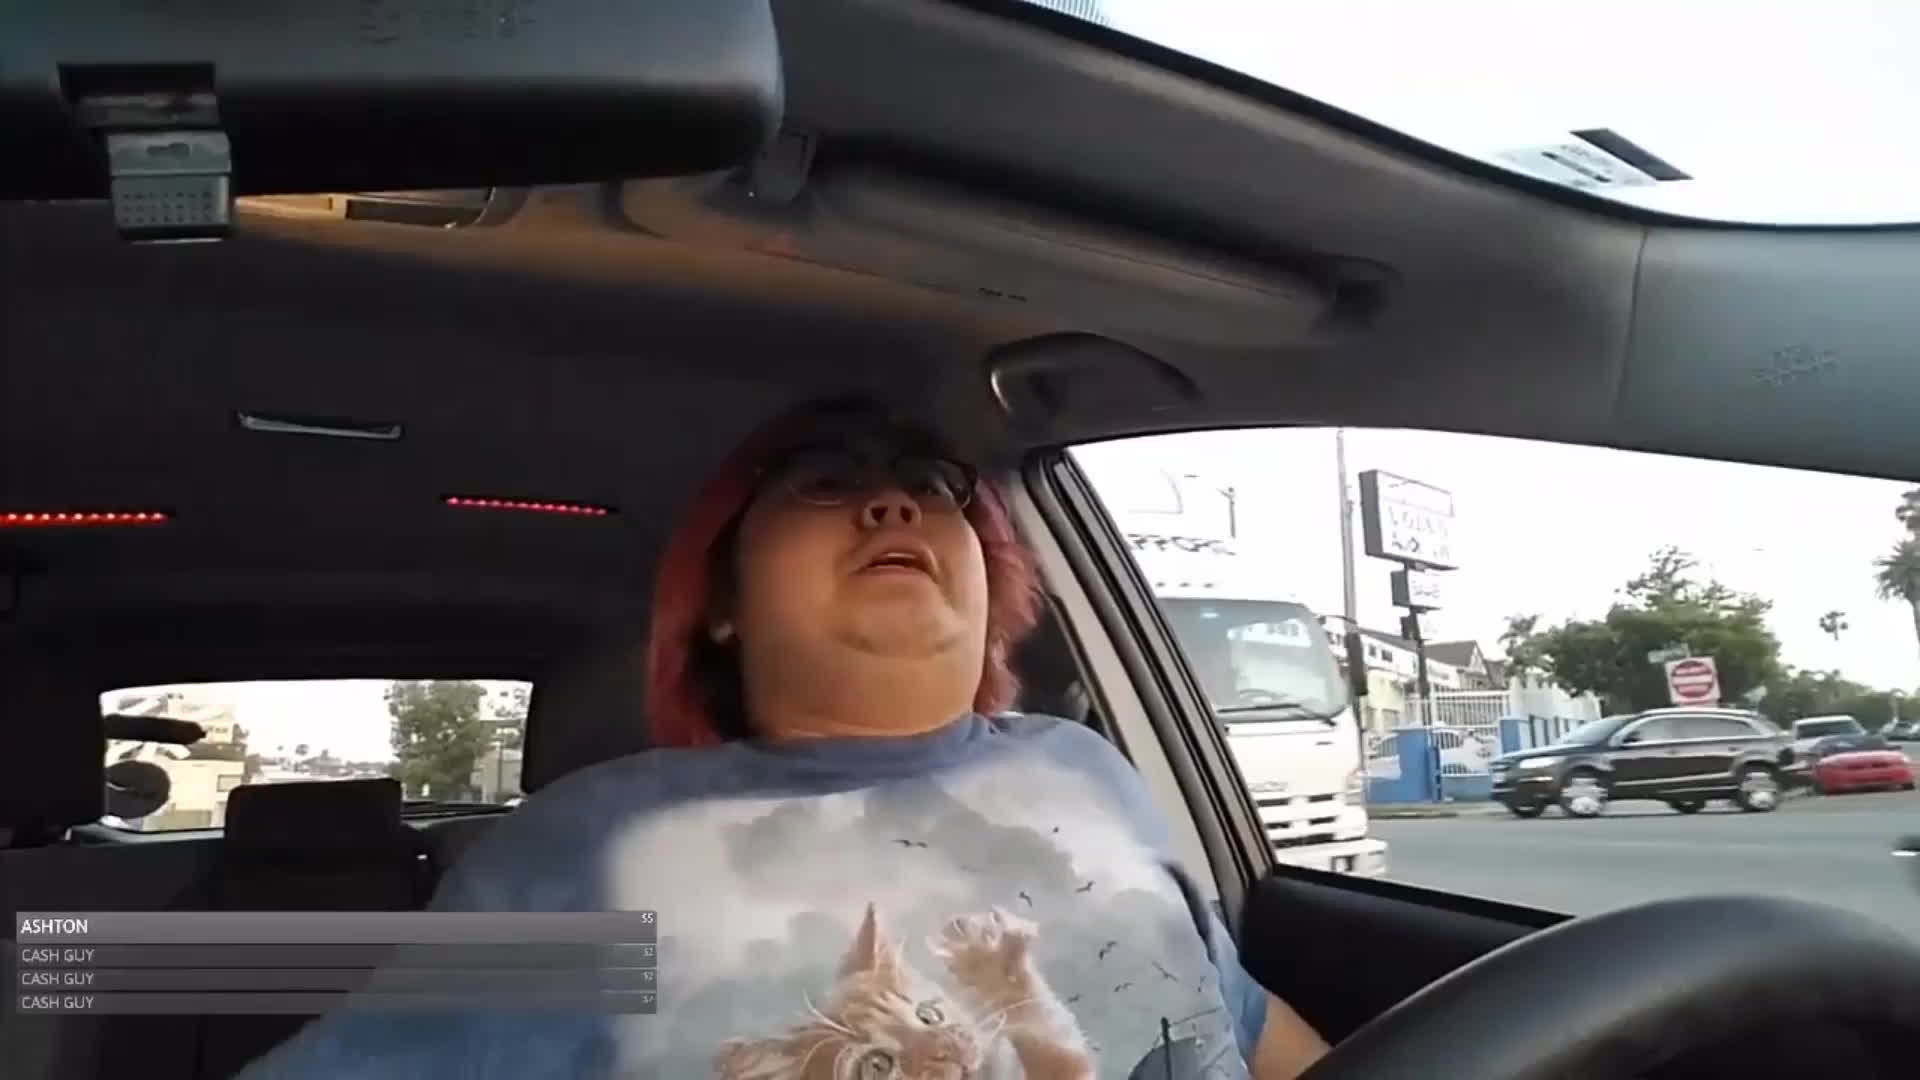 asian andy, ice poseidon, rage, Asian Andy rips his shirt in half on stream GIFs